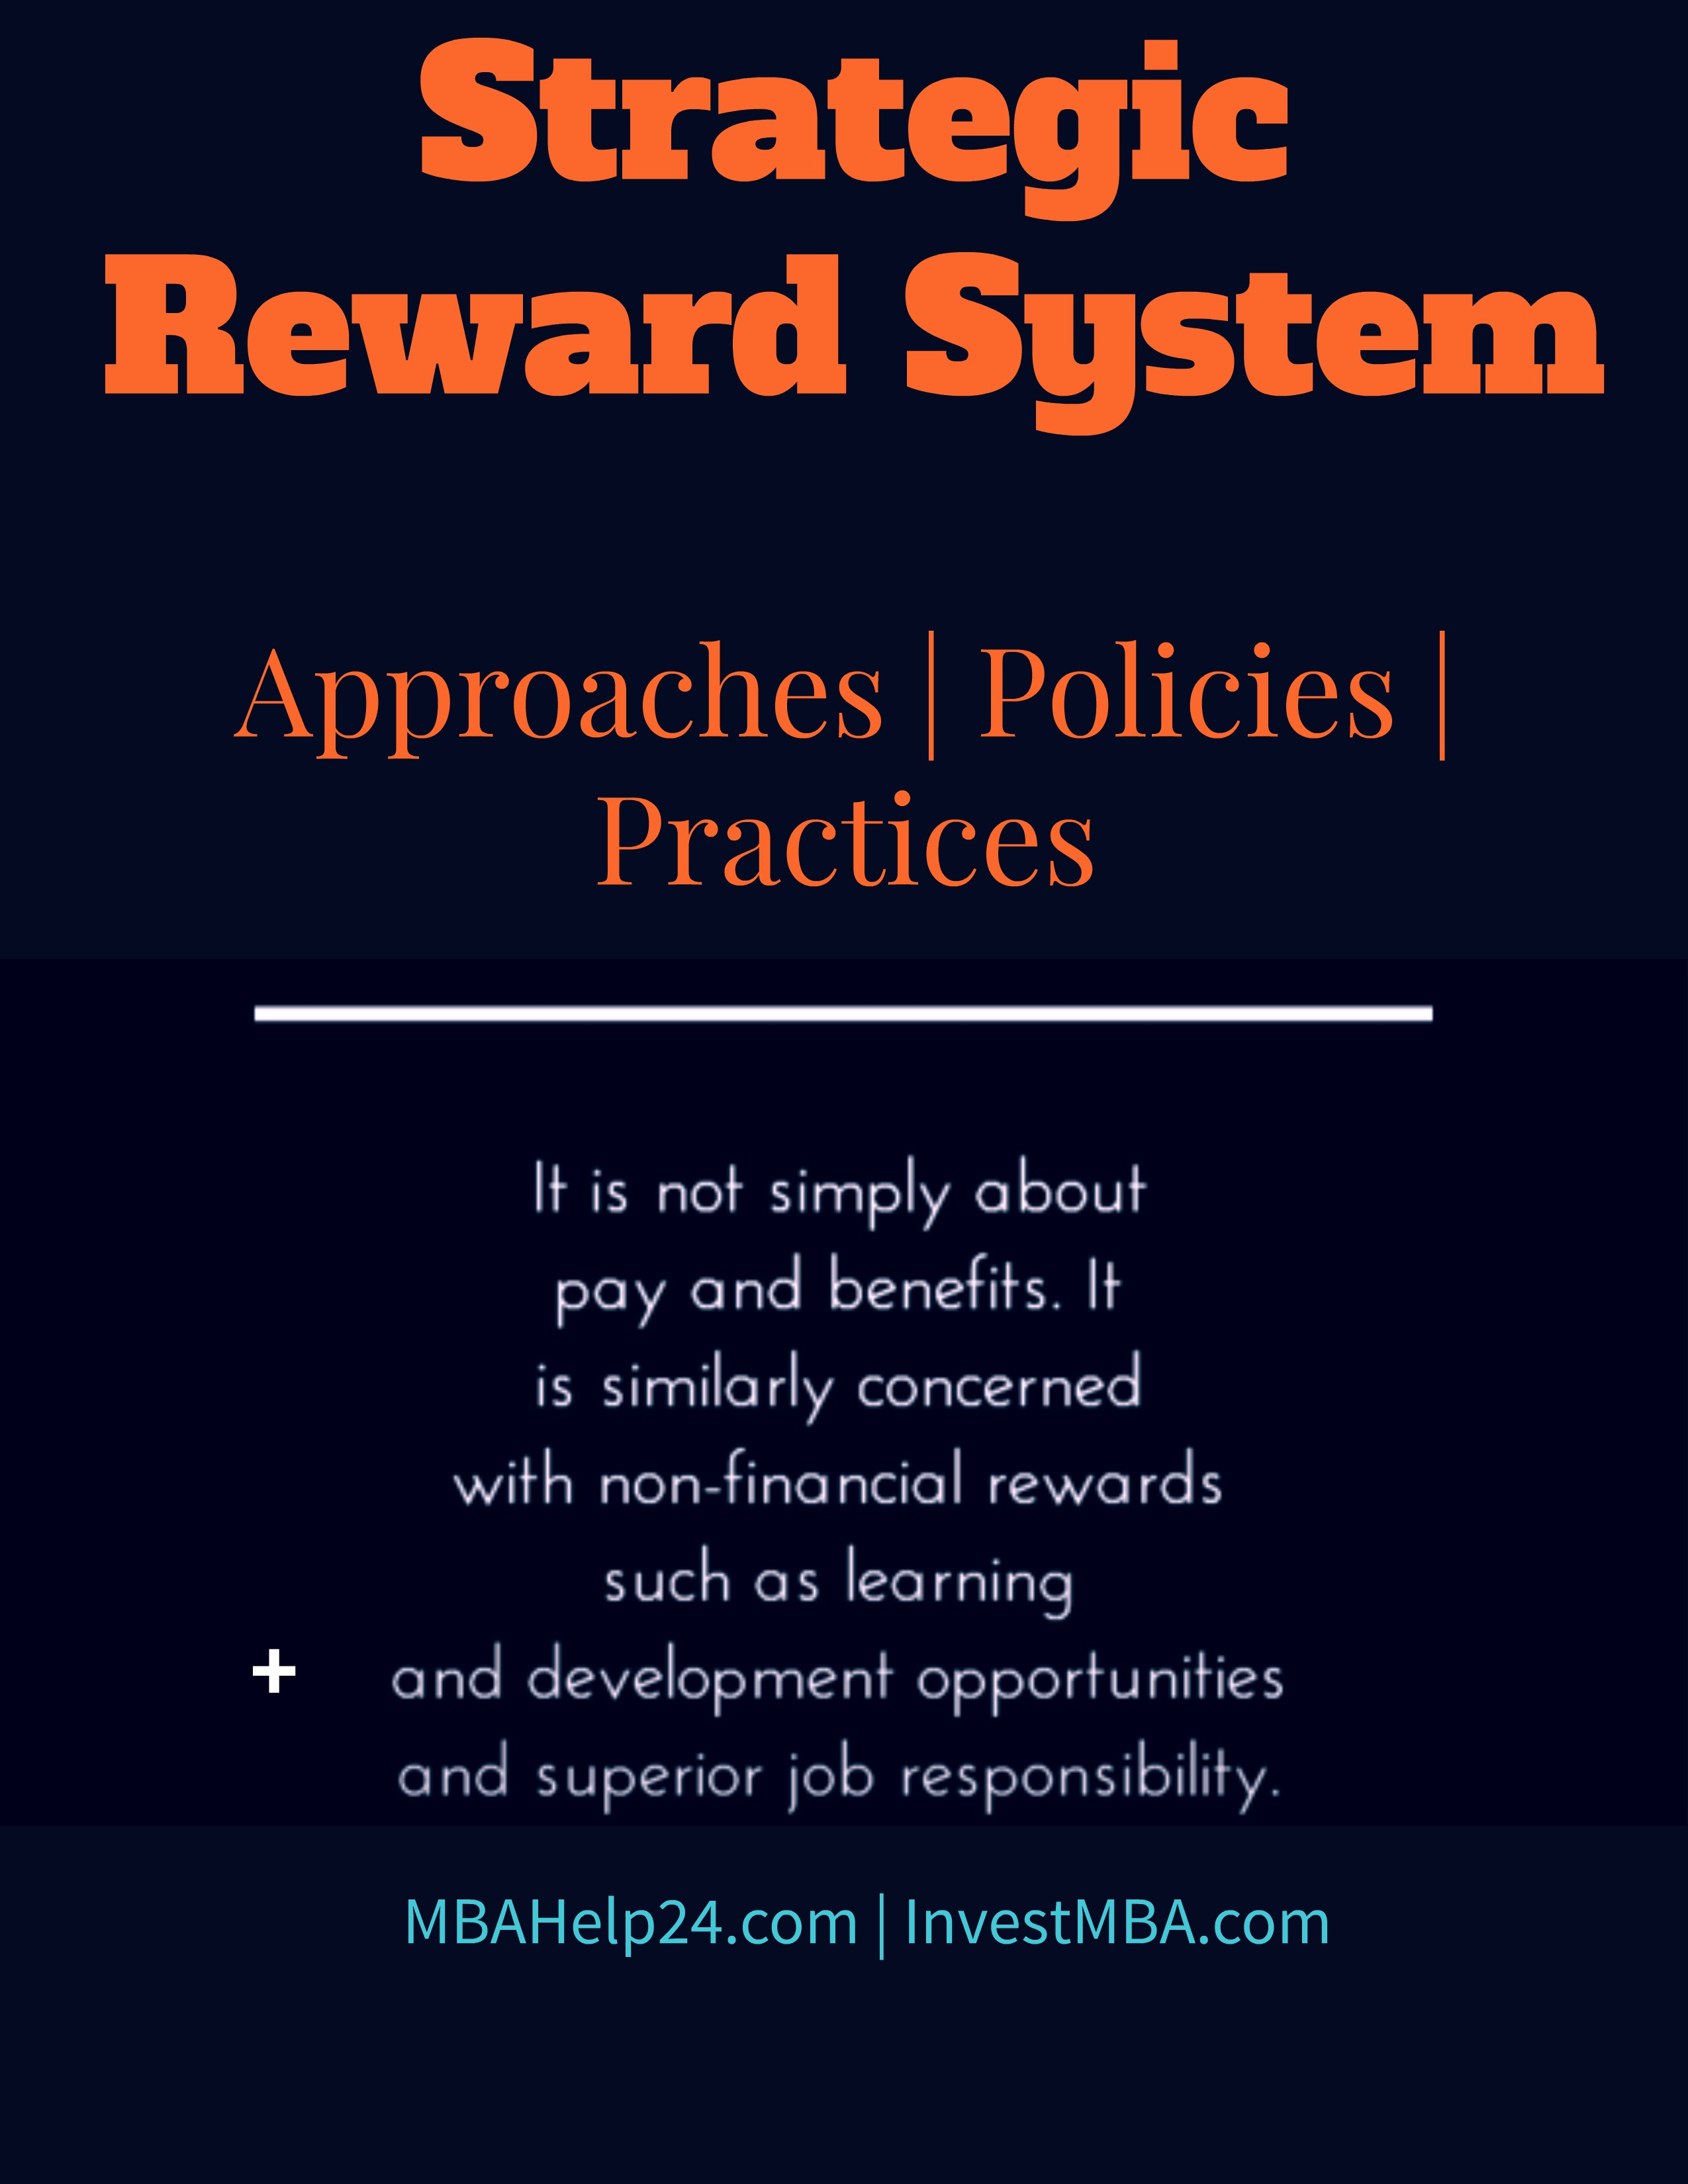 Strategic Reward System | Aims | Approaches | Policies | Practices  Reward System Strategic Reward System | Aims | Approaches | Policies | Practices strategic reward system